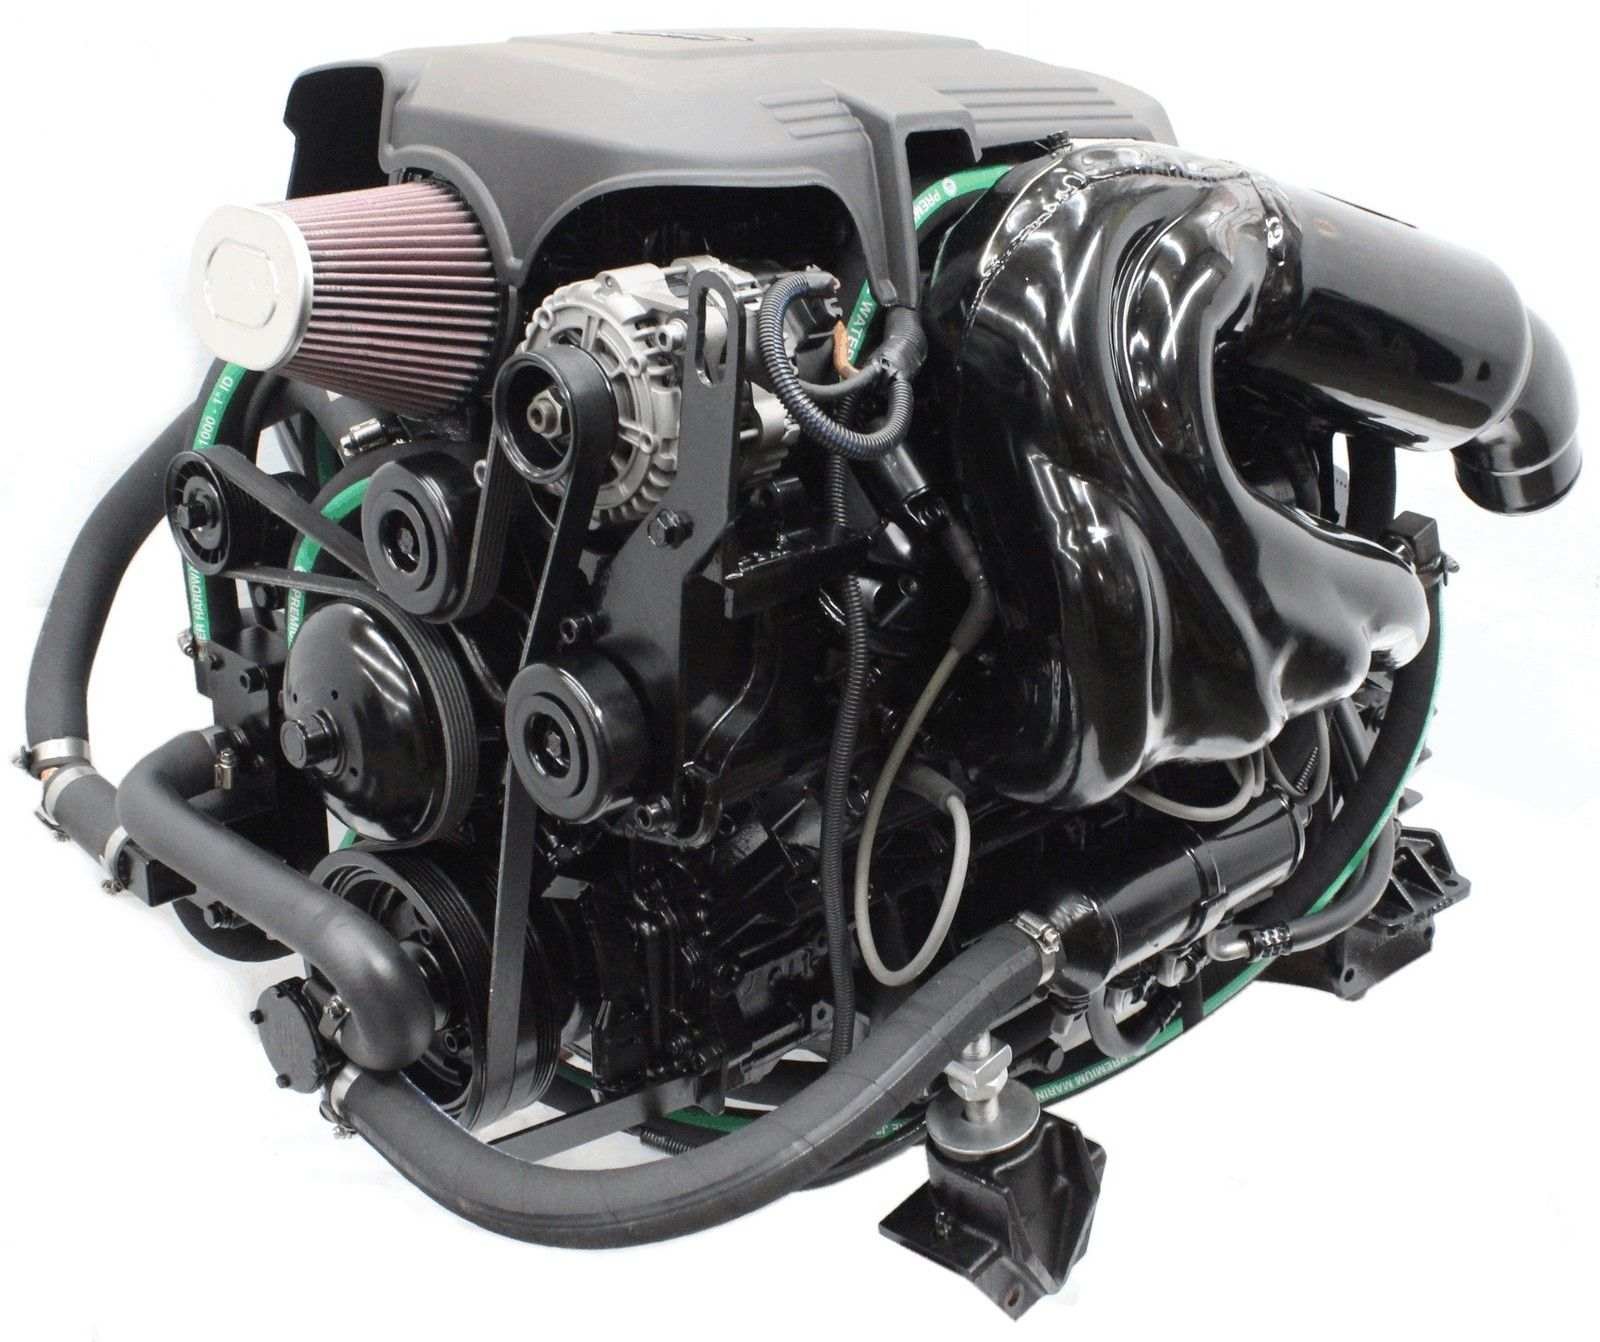 new indmar 6 0l 380 hp vortec inboard complete boat engine m5916 6 0 ebay. Black Bedroom Furniture Sets. Home Design Ideas